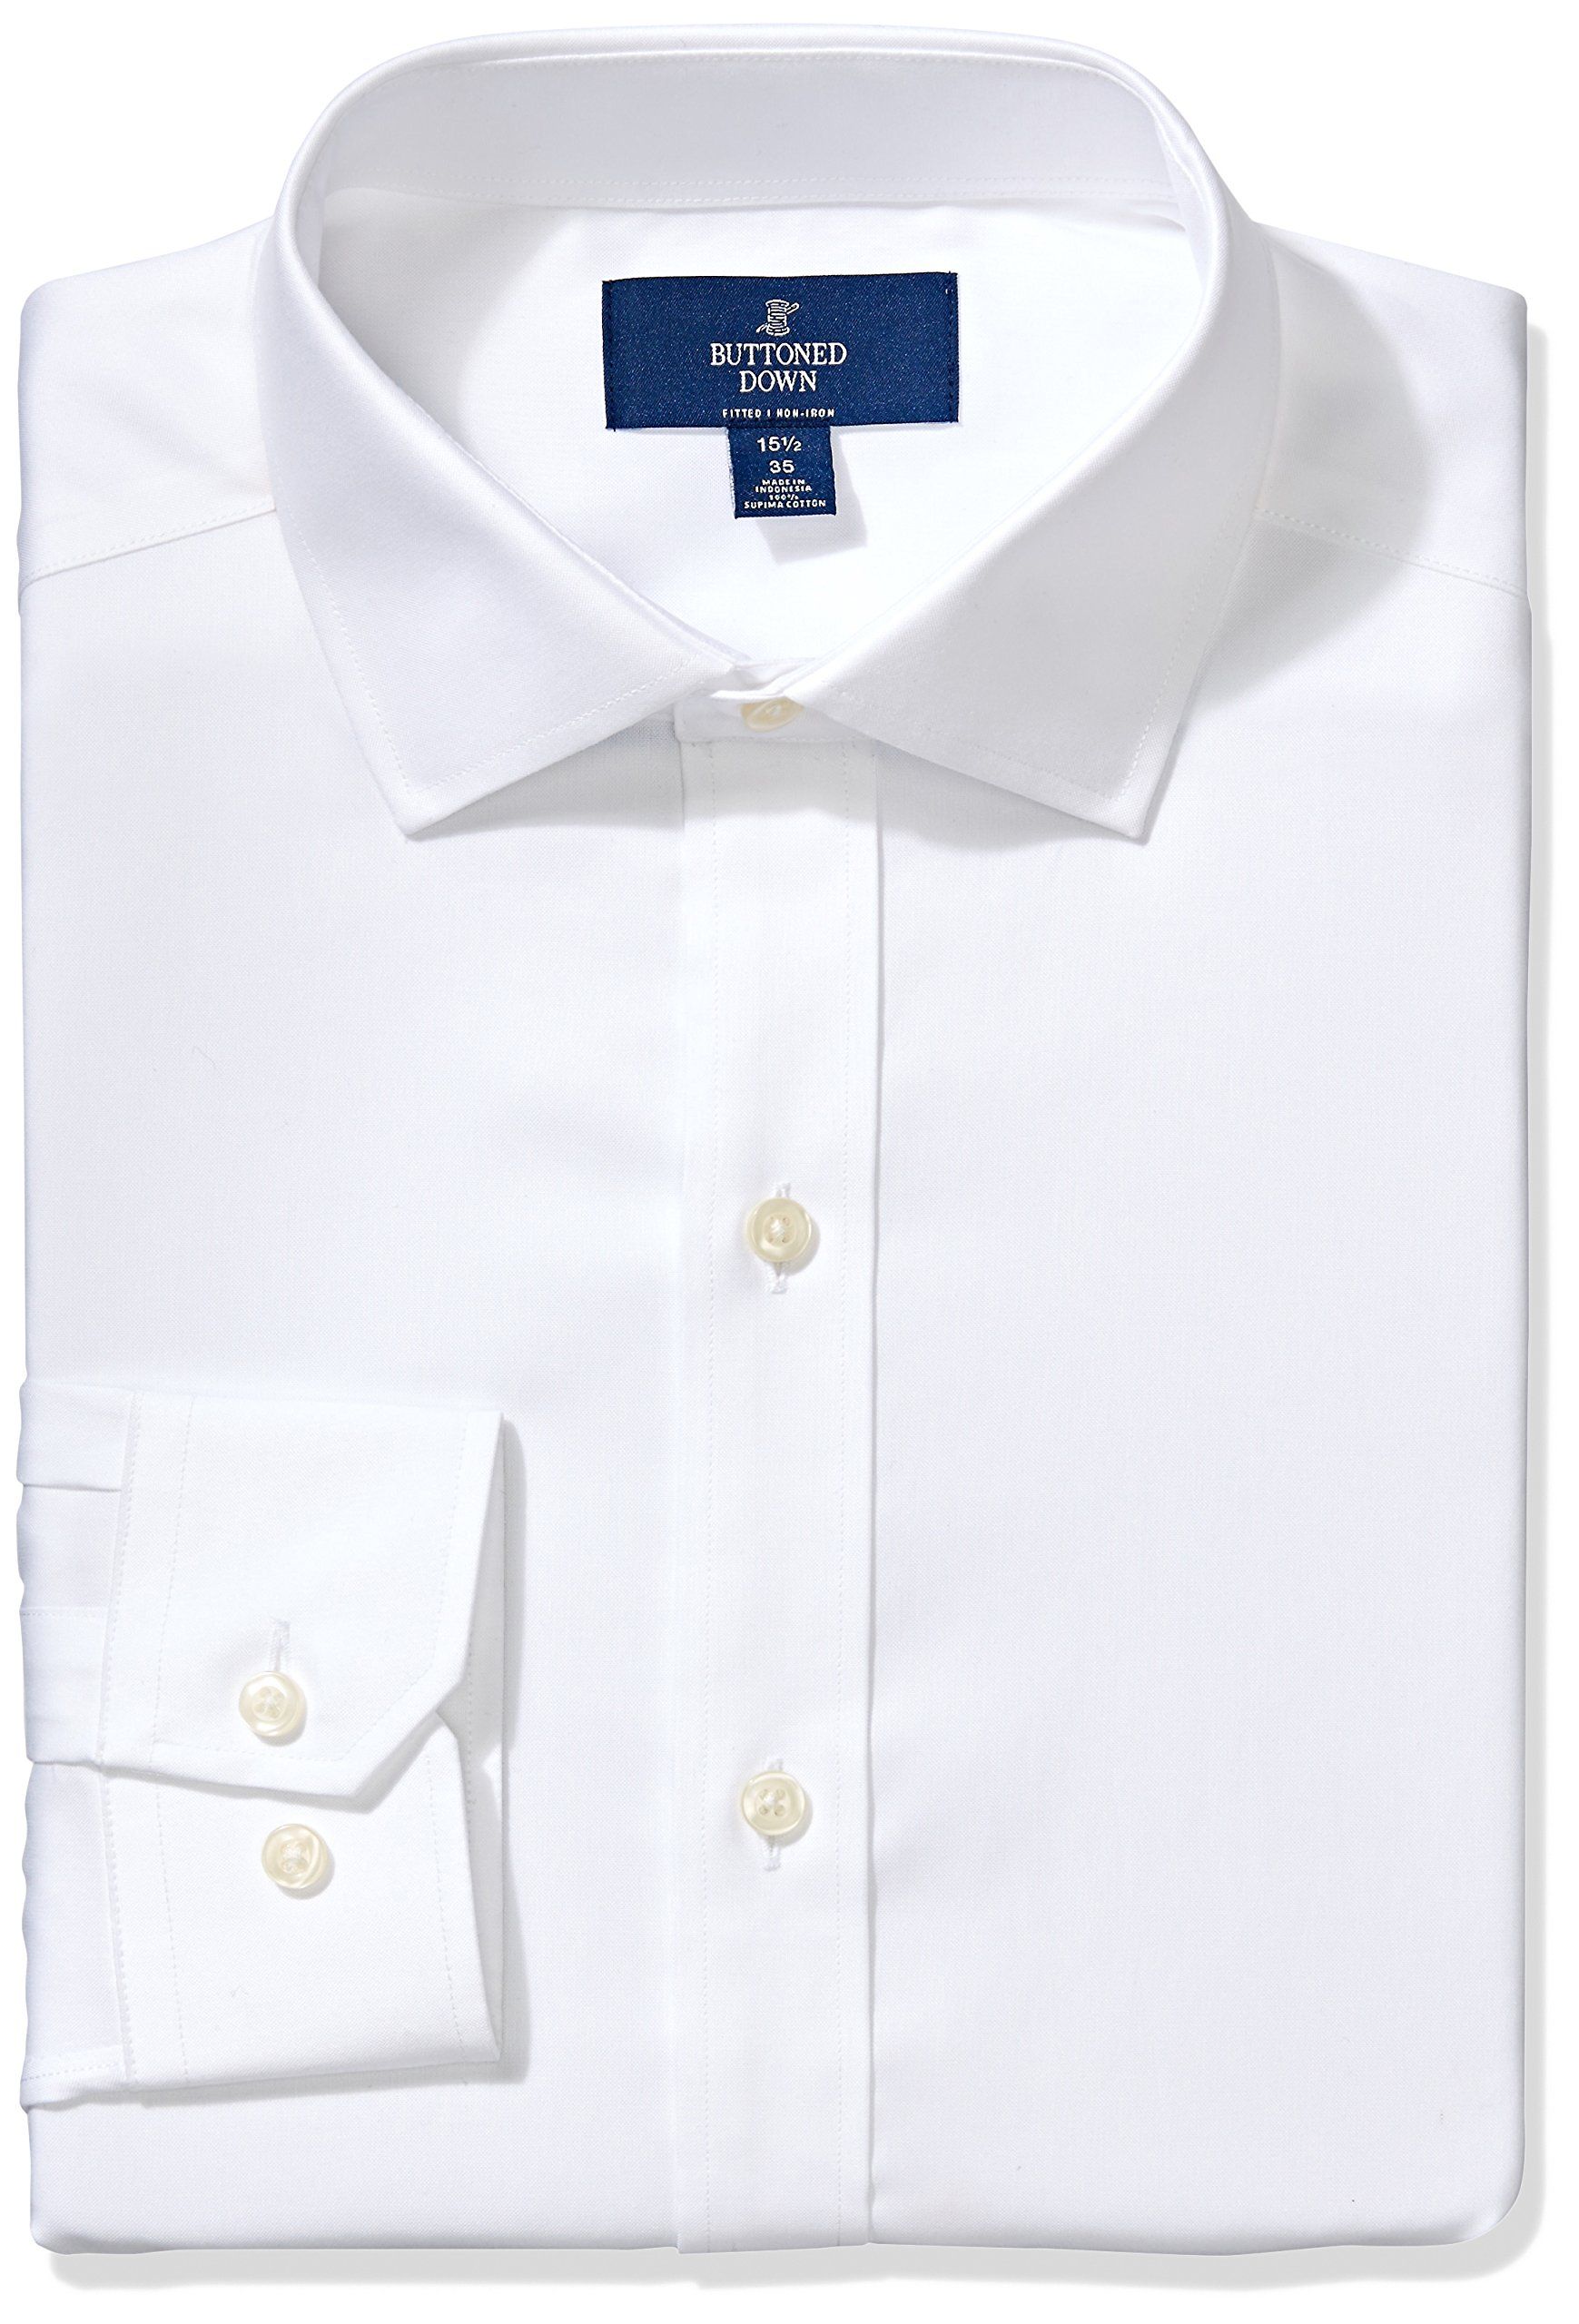 Buttoned Down Men's Fitted Spread-Collar Non-Iron Dress Shirt, White, 17.5'' Neck 35'' Sleeve